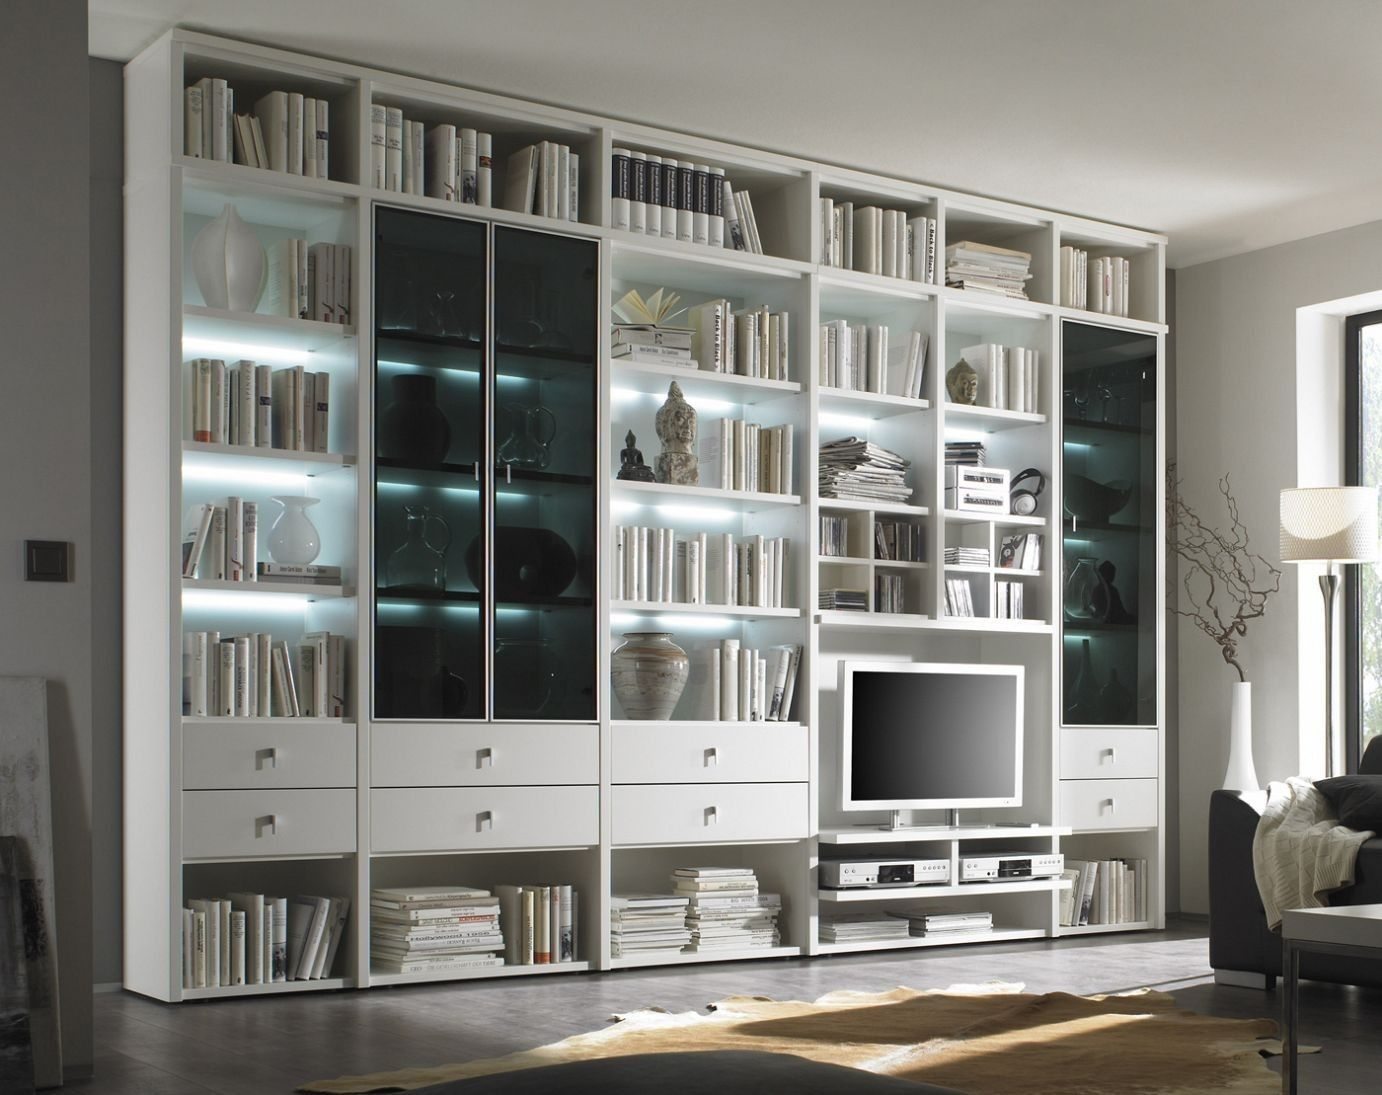 Pin By Sara Ruter On Wohnzimmermobel Home Home Decor Shelving Unit